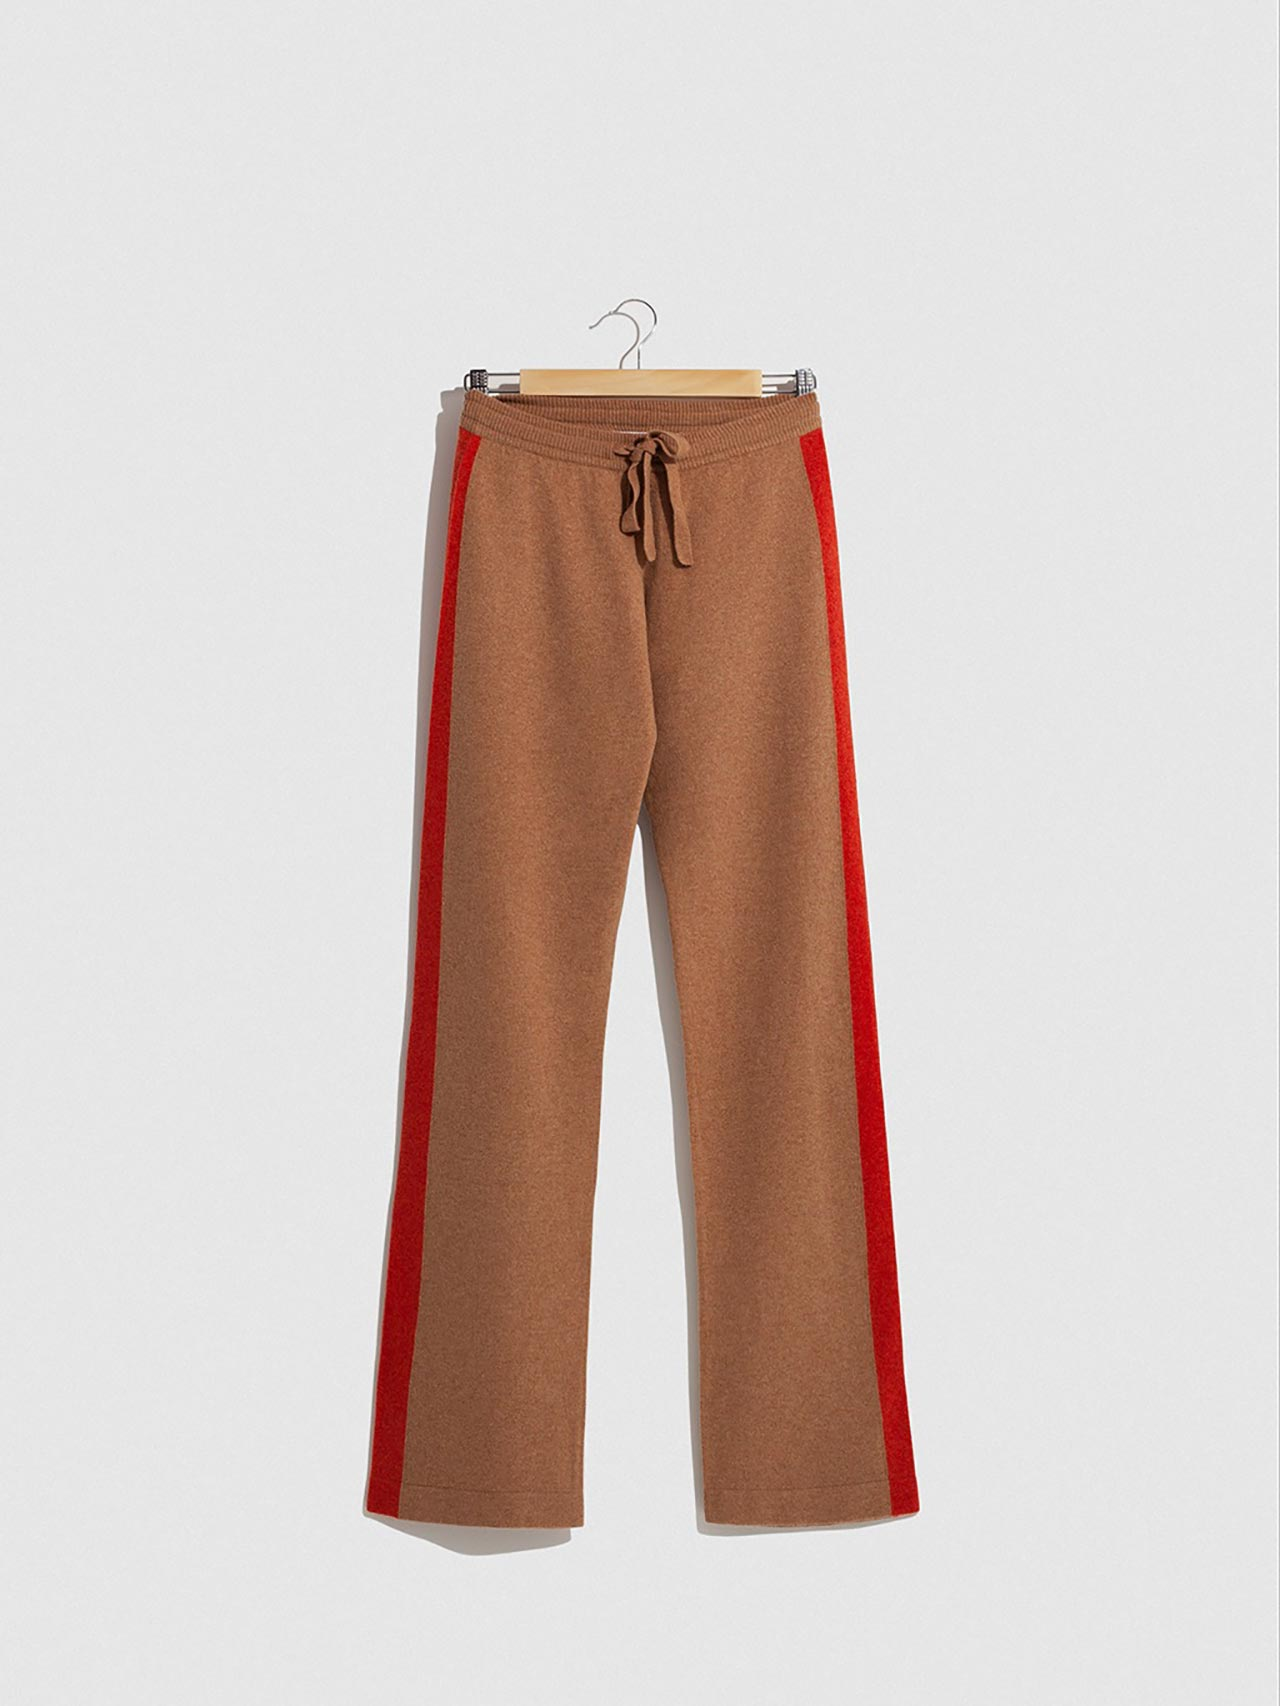 Leo Cashmere Pants Caramel & Red